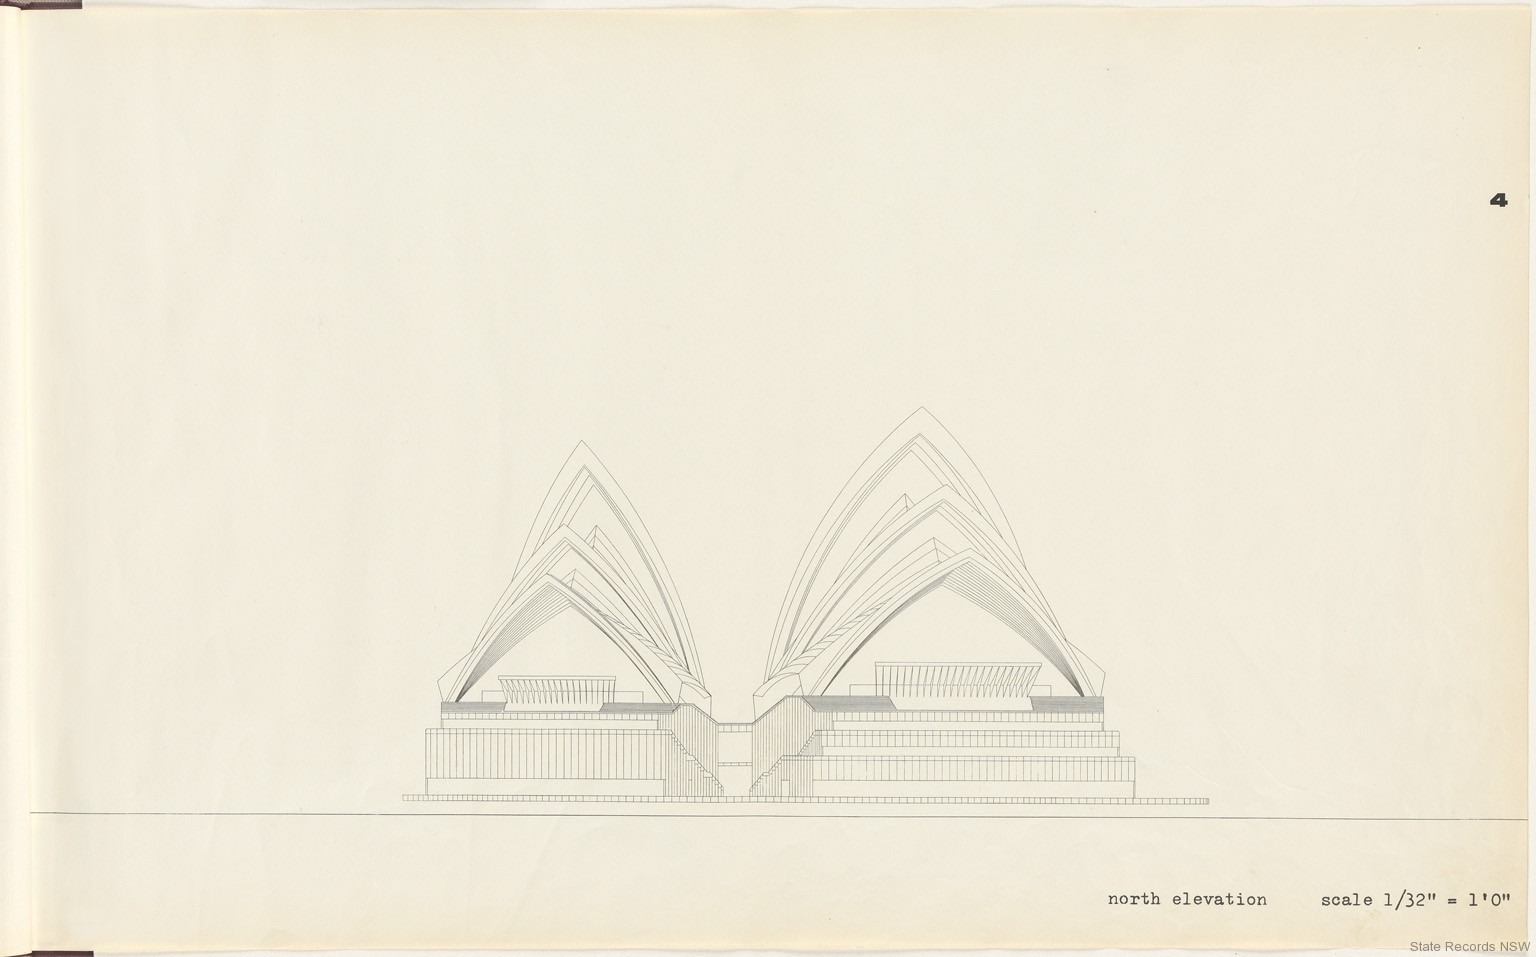 4. North elevation. Sydney Opera House - Yellow Book. NRS 12708